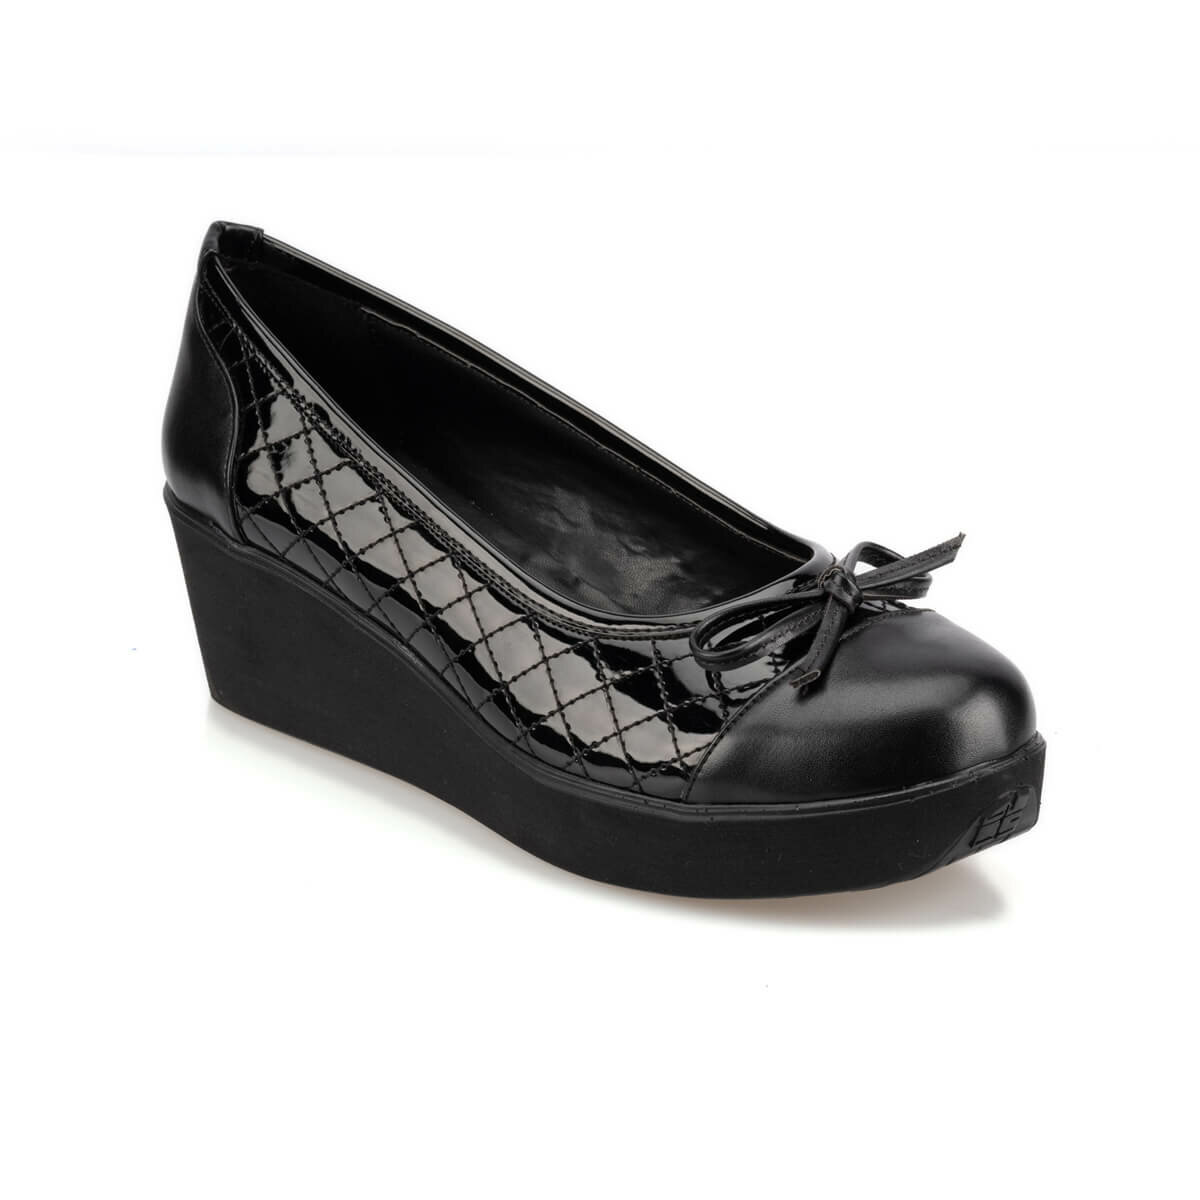 FLO 92. 314244.Z Black Women Gova Shoes Polaris